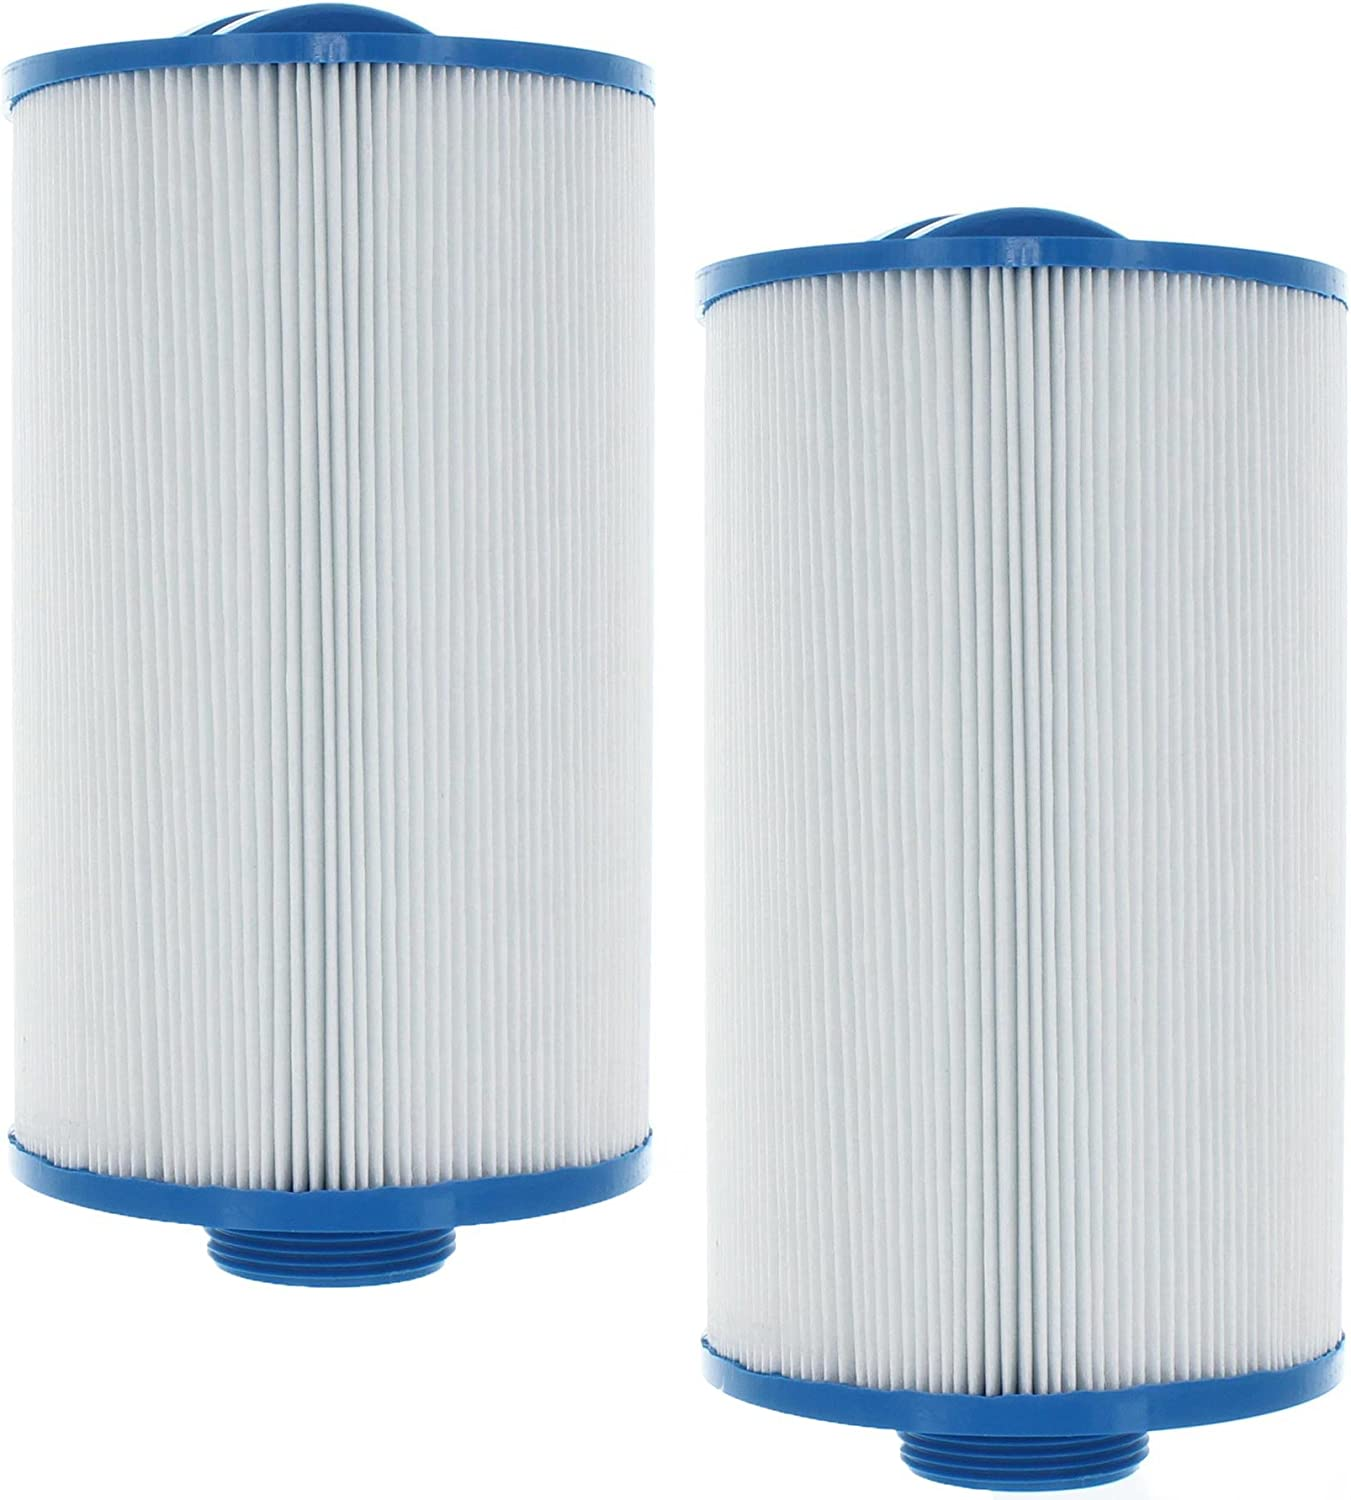 PTI F4E050CCB Filter Replacement pack of 2